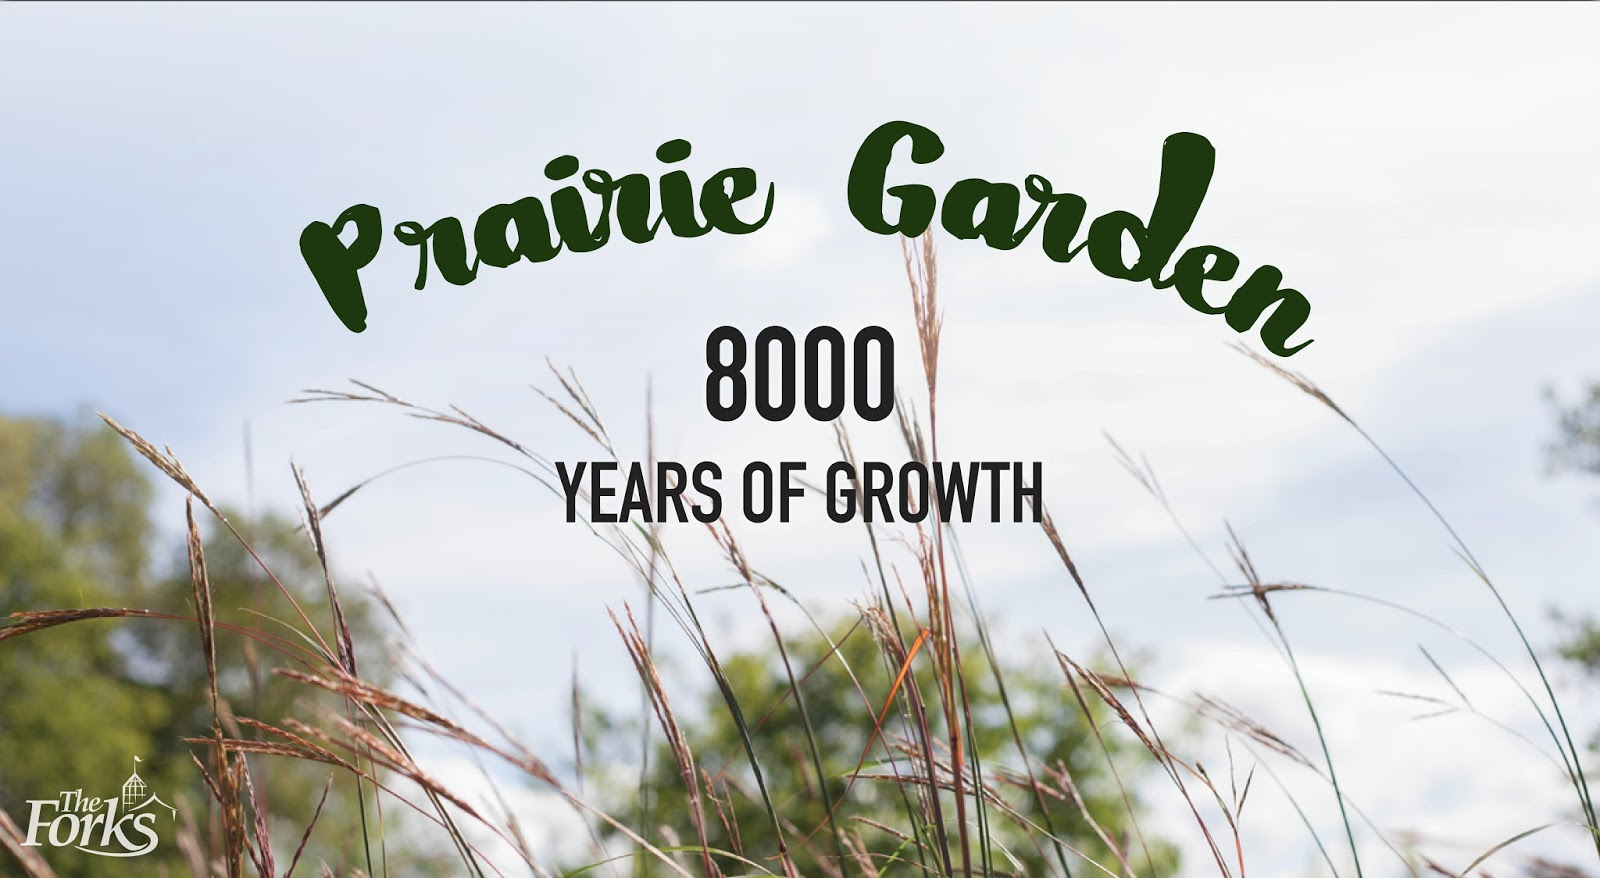 Prairie Garden 8000 Years Of Growth The Forks